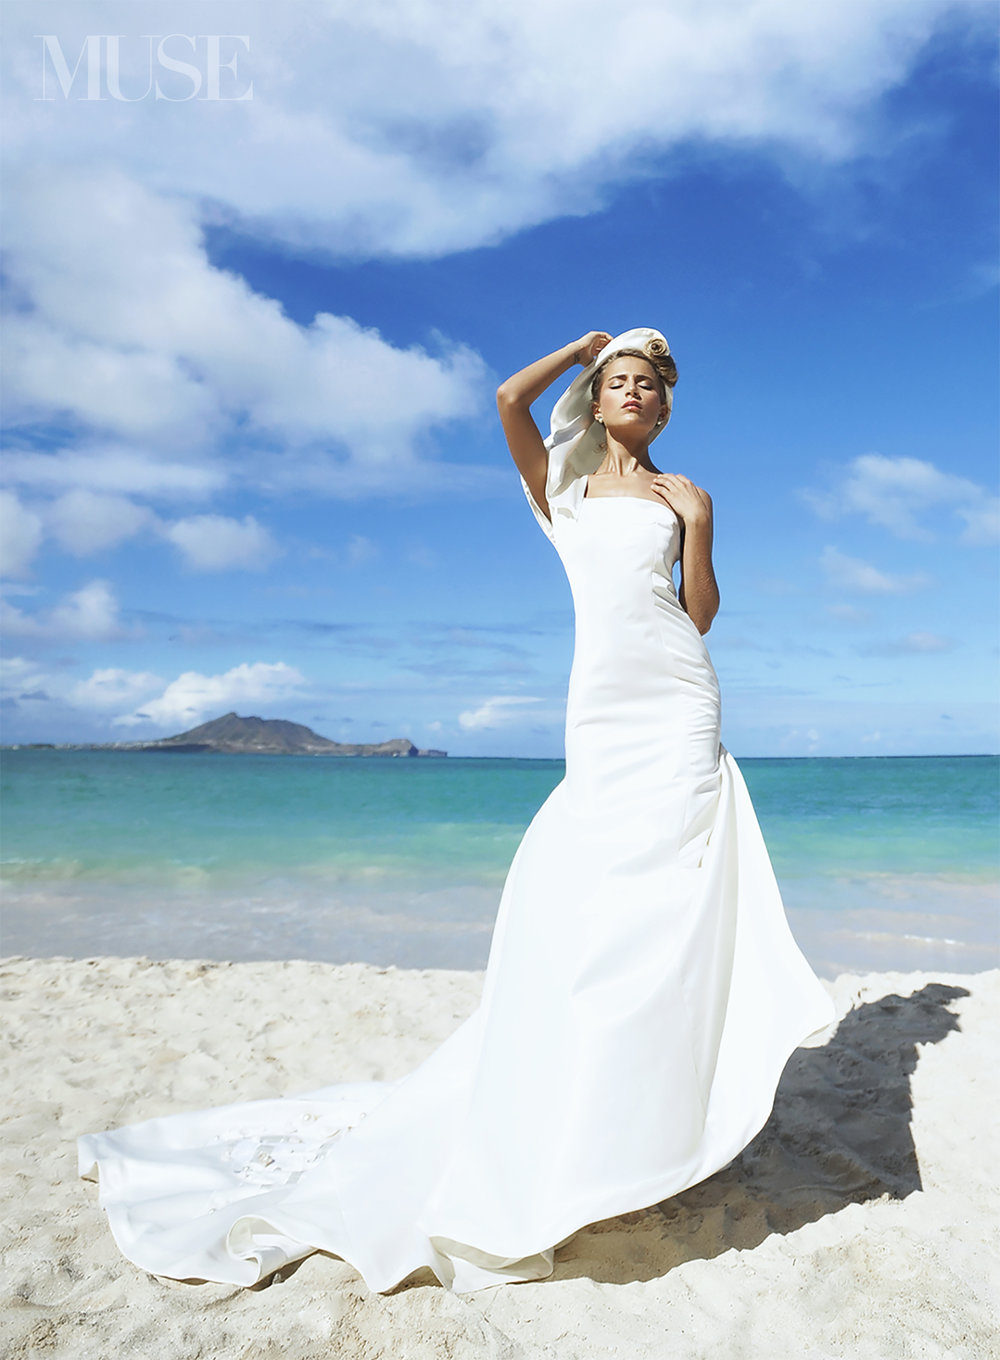 musebride-hawaii-wedding-photography-ericrhodes-1.jpg